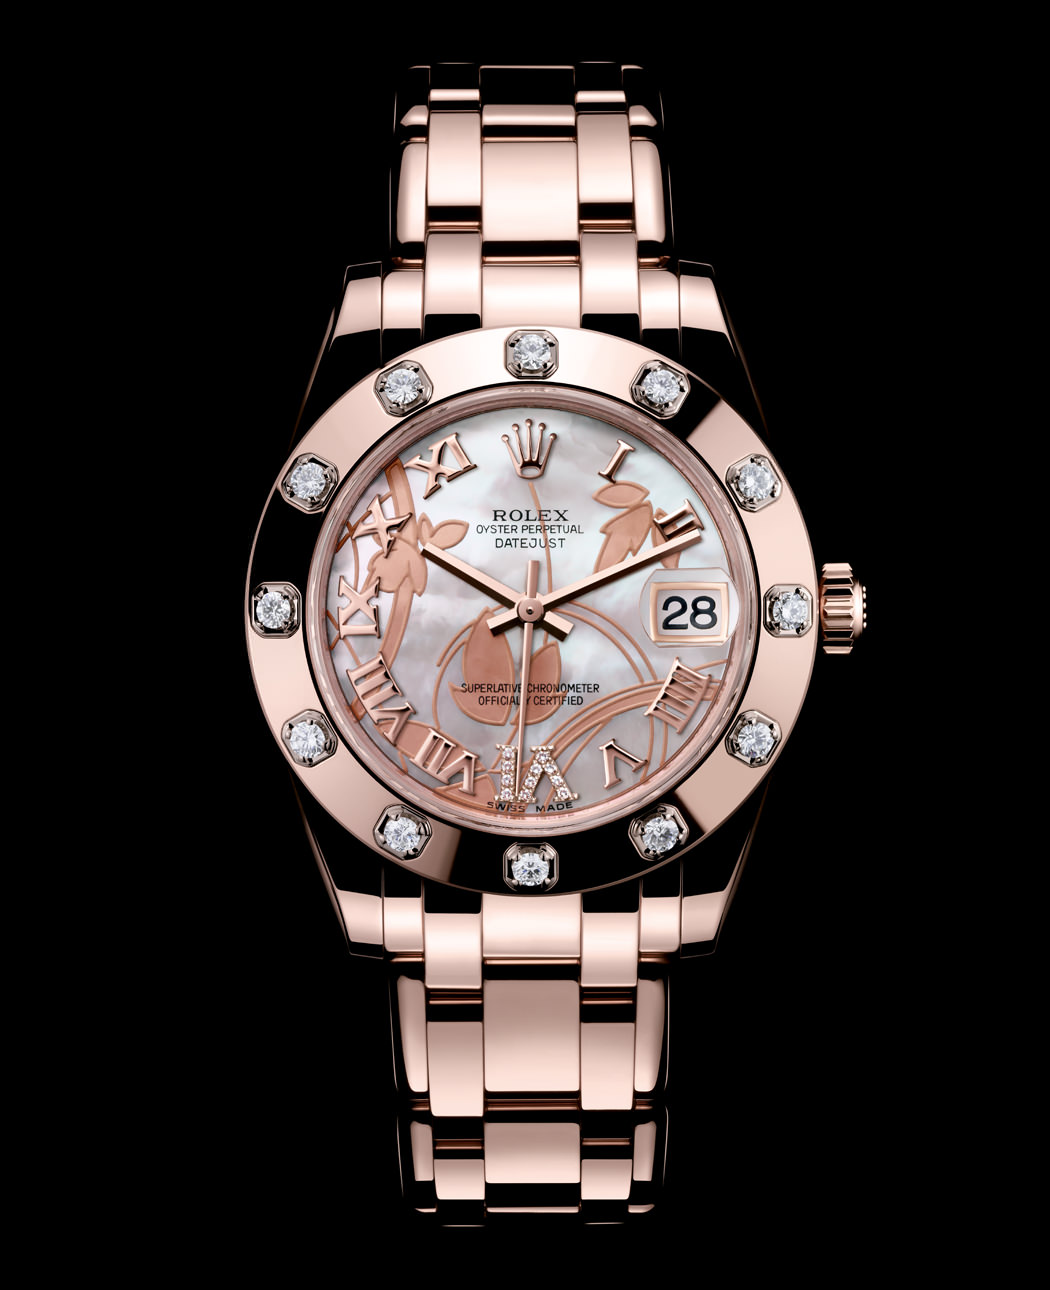 DATEJUST SPECIAL EDITION de Rolex